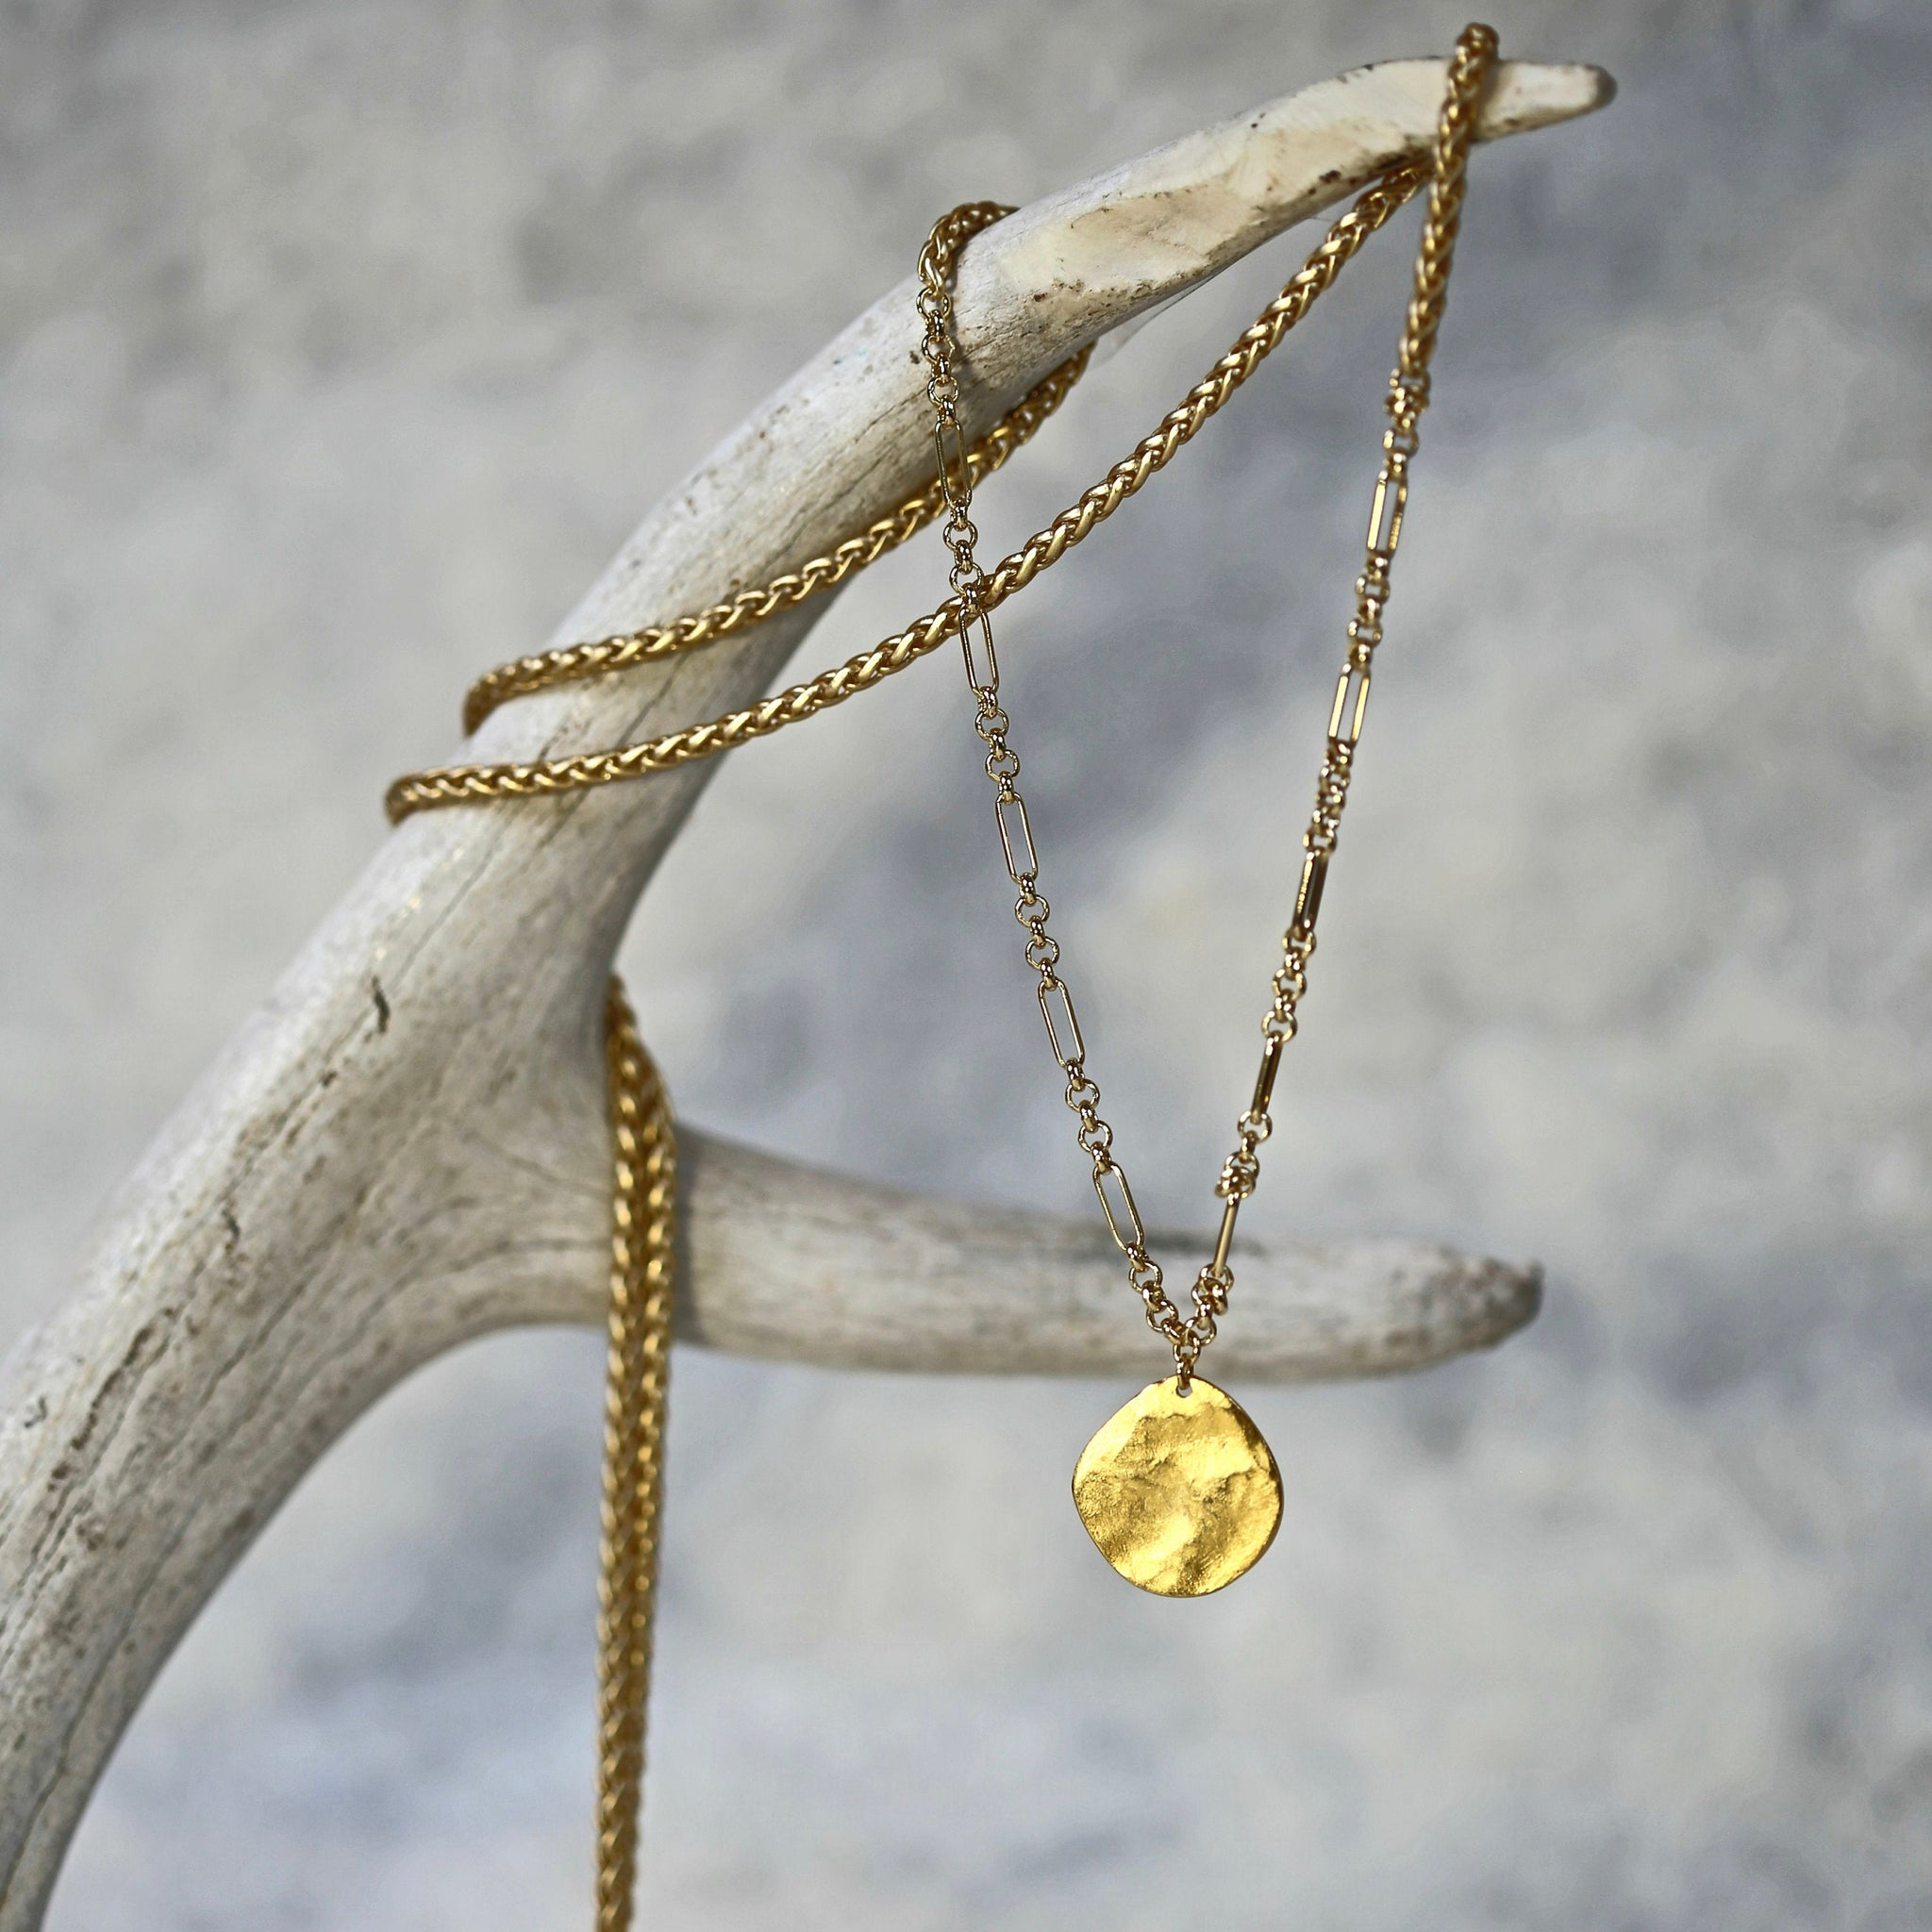 Long Luna Necklace / Long Gold or Silver Chain Necklace